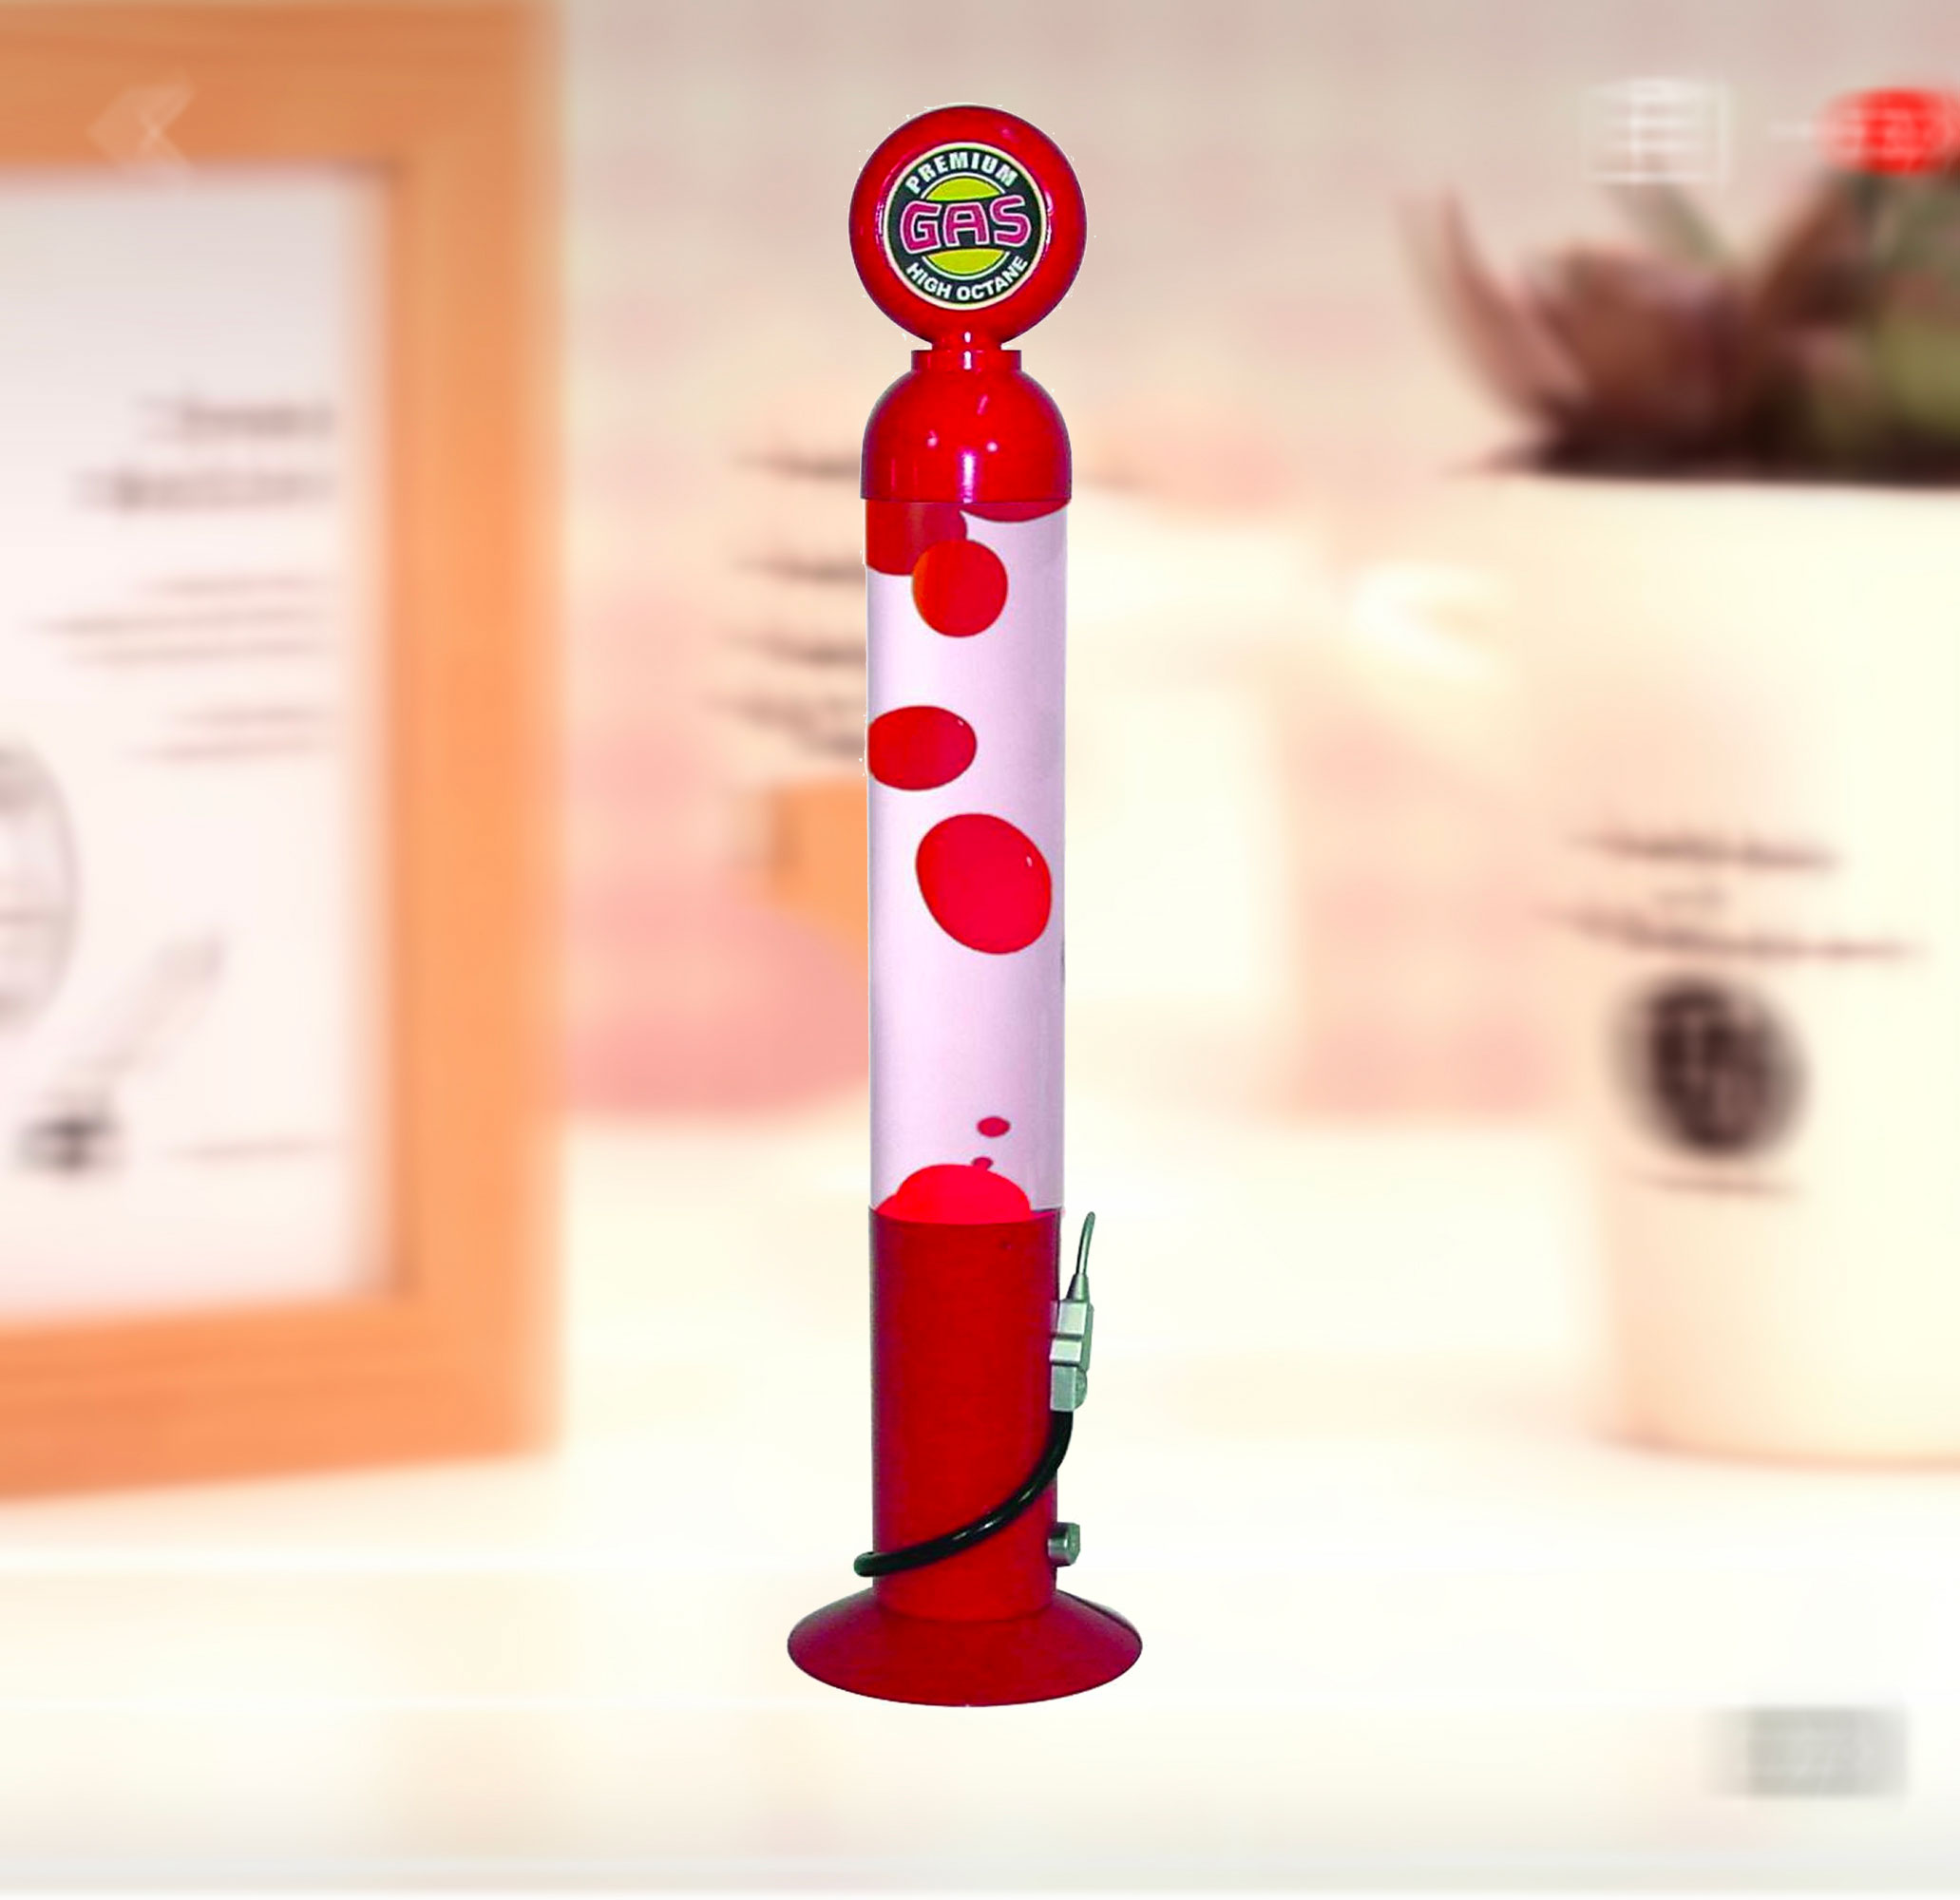 Creative Motion Gas Pump Motion Light, Retro look, Gas Pump look, Nestalgia , mesmerizing mixture of oil and wax, Product Size: 4x17x4